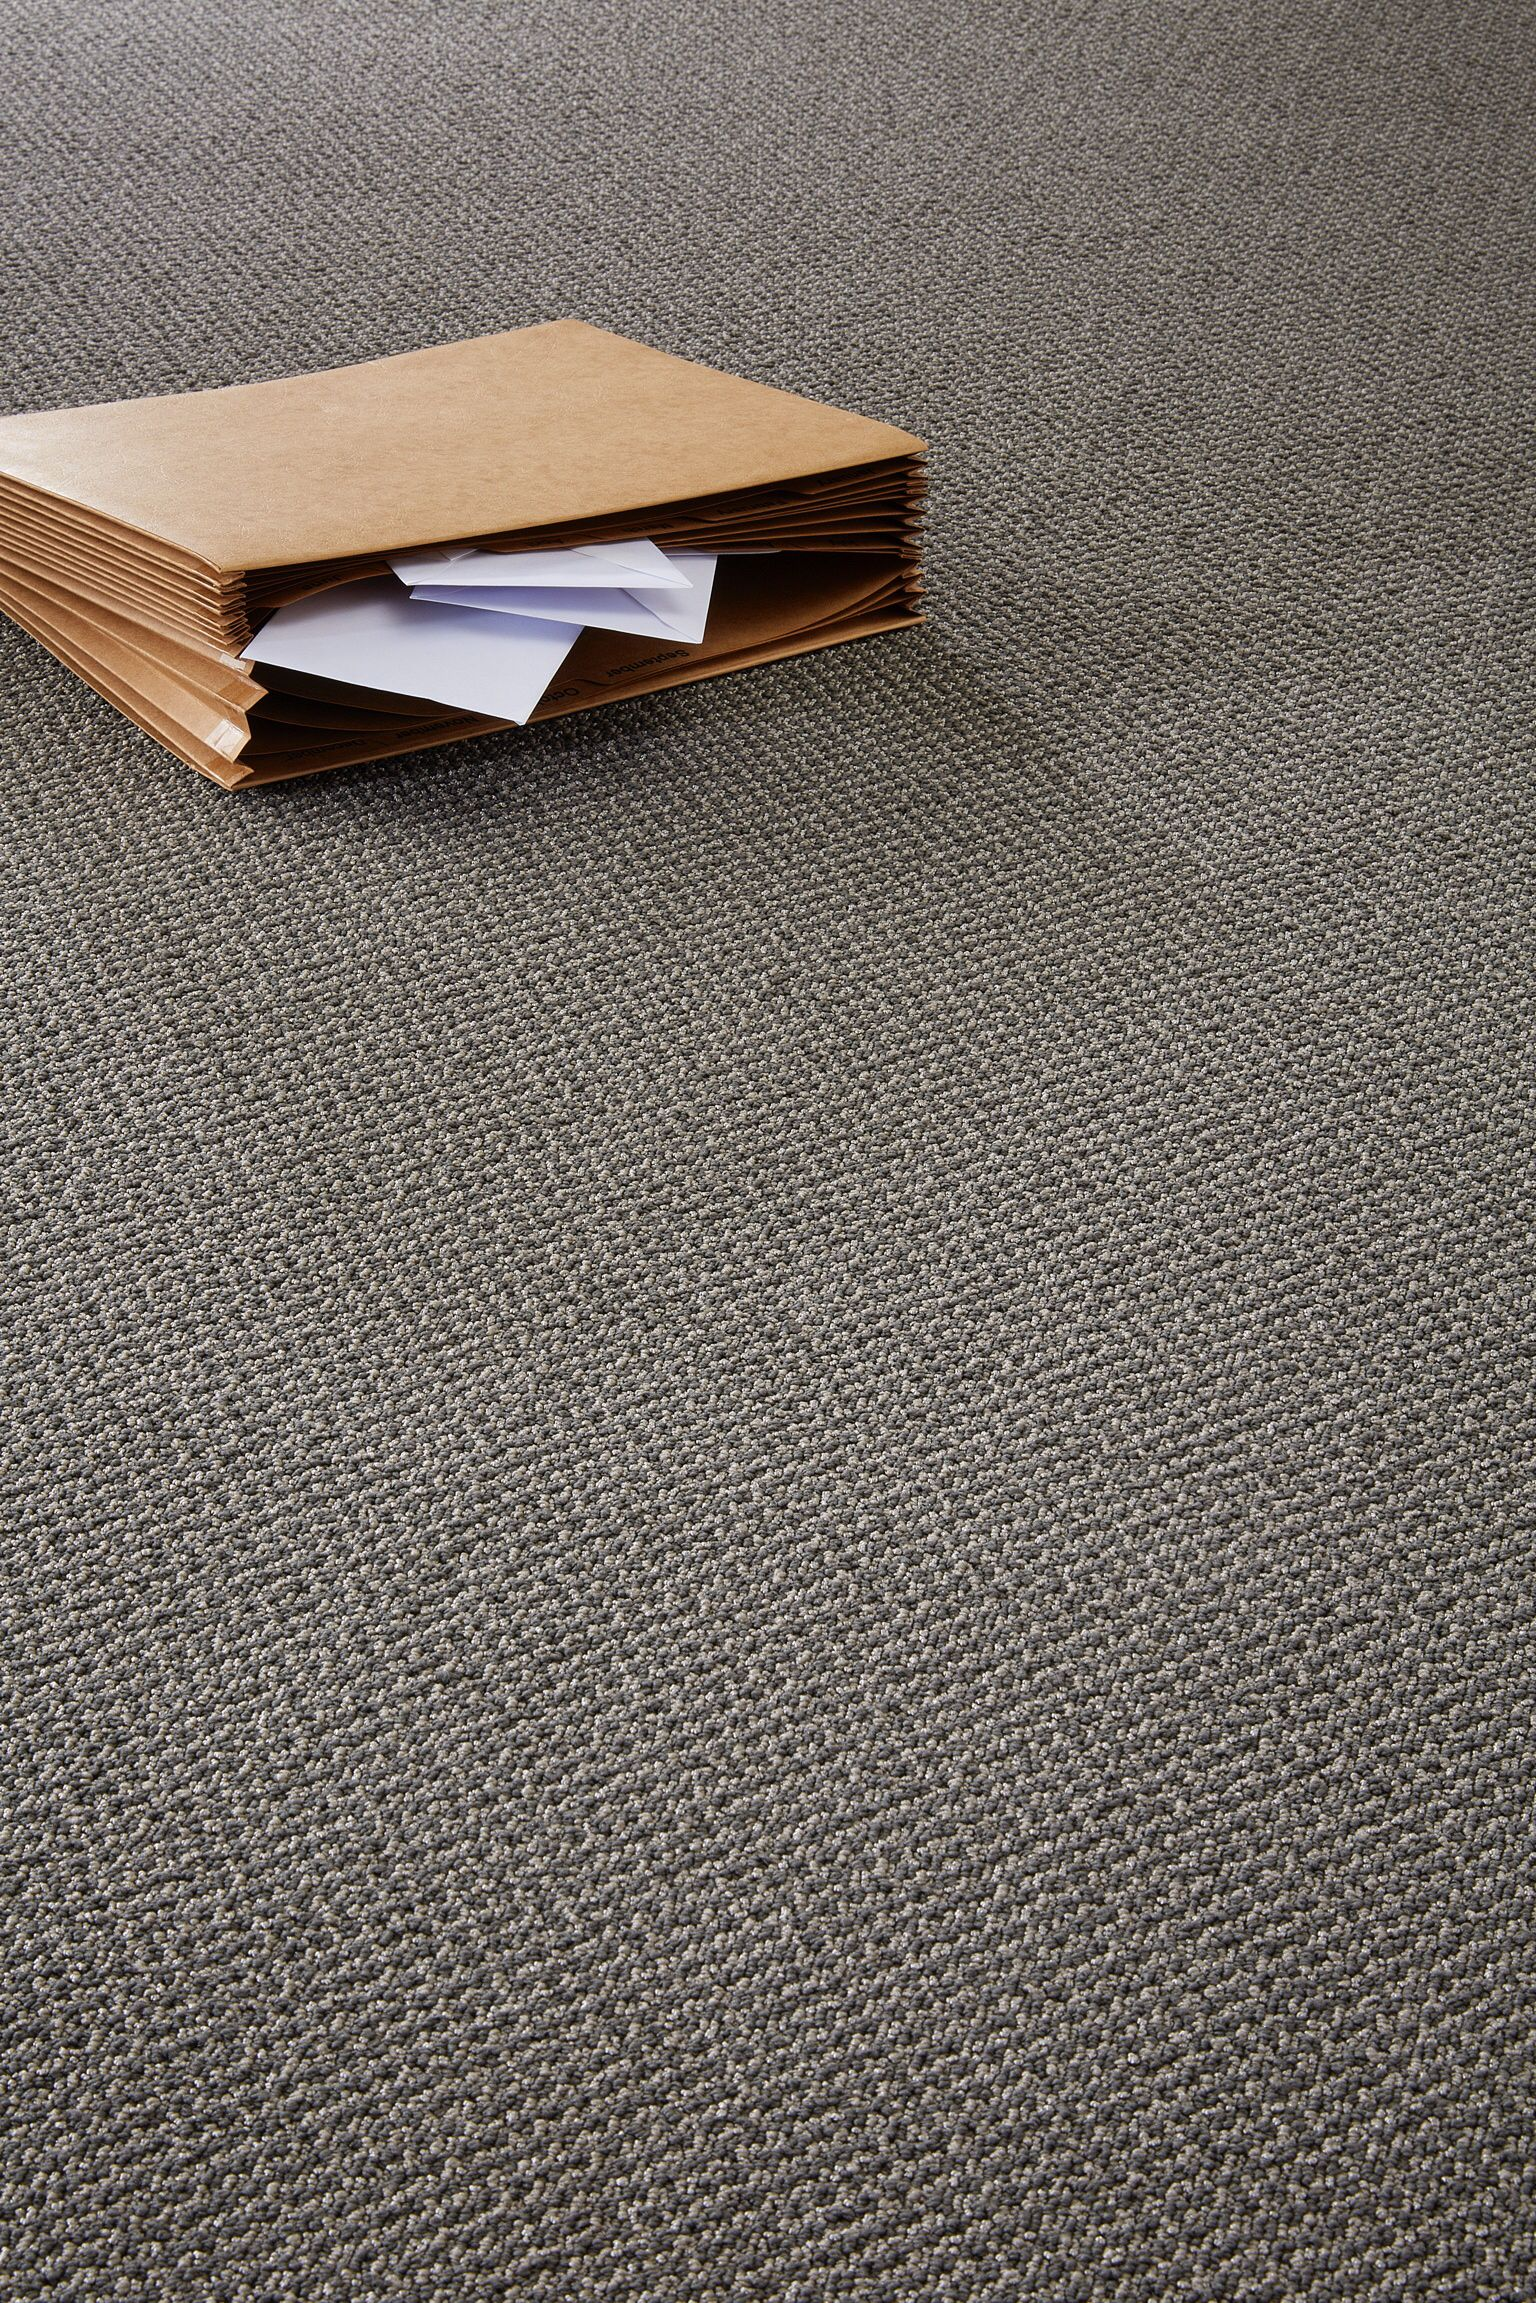 Connect 195 Totally Carpet Broadloom Tile Gray Solution Dyed Totallycarpet Com With Images Accessories Dye Grey